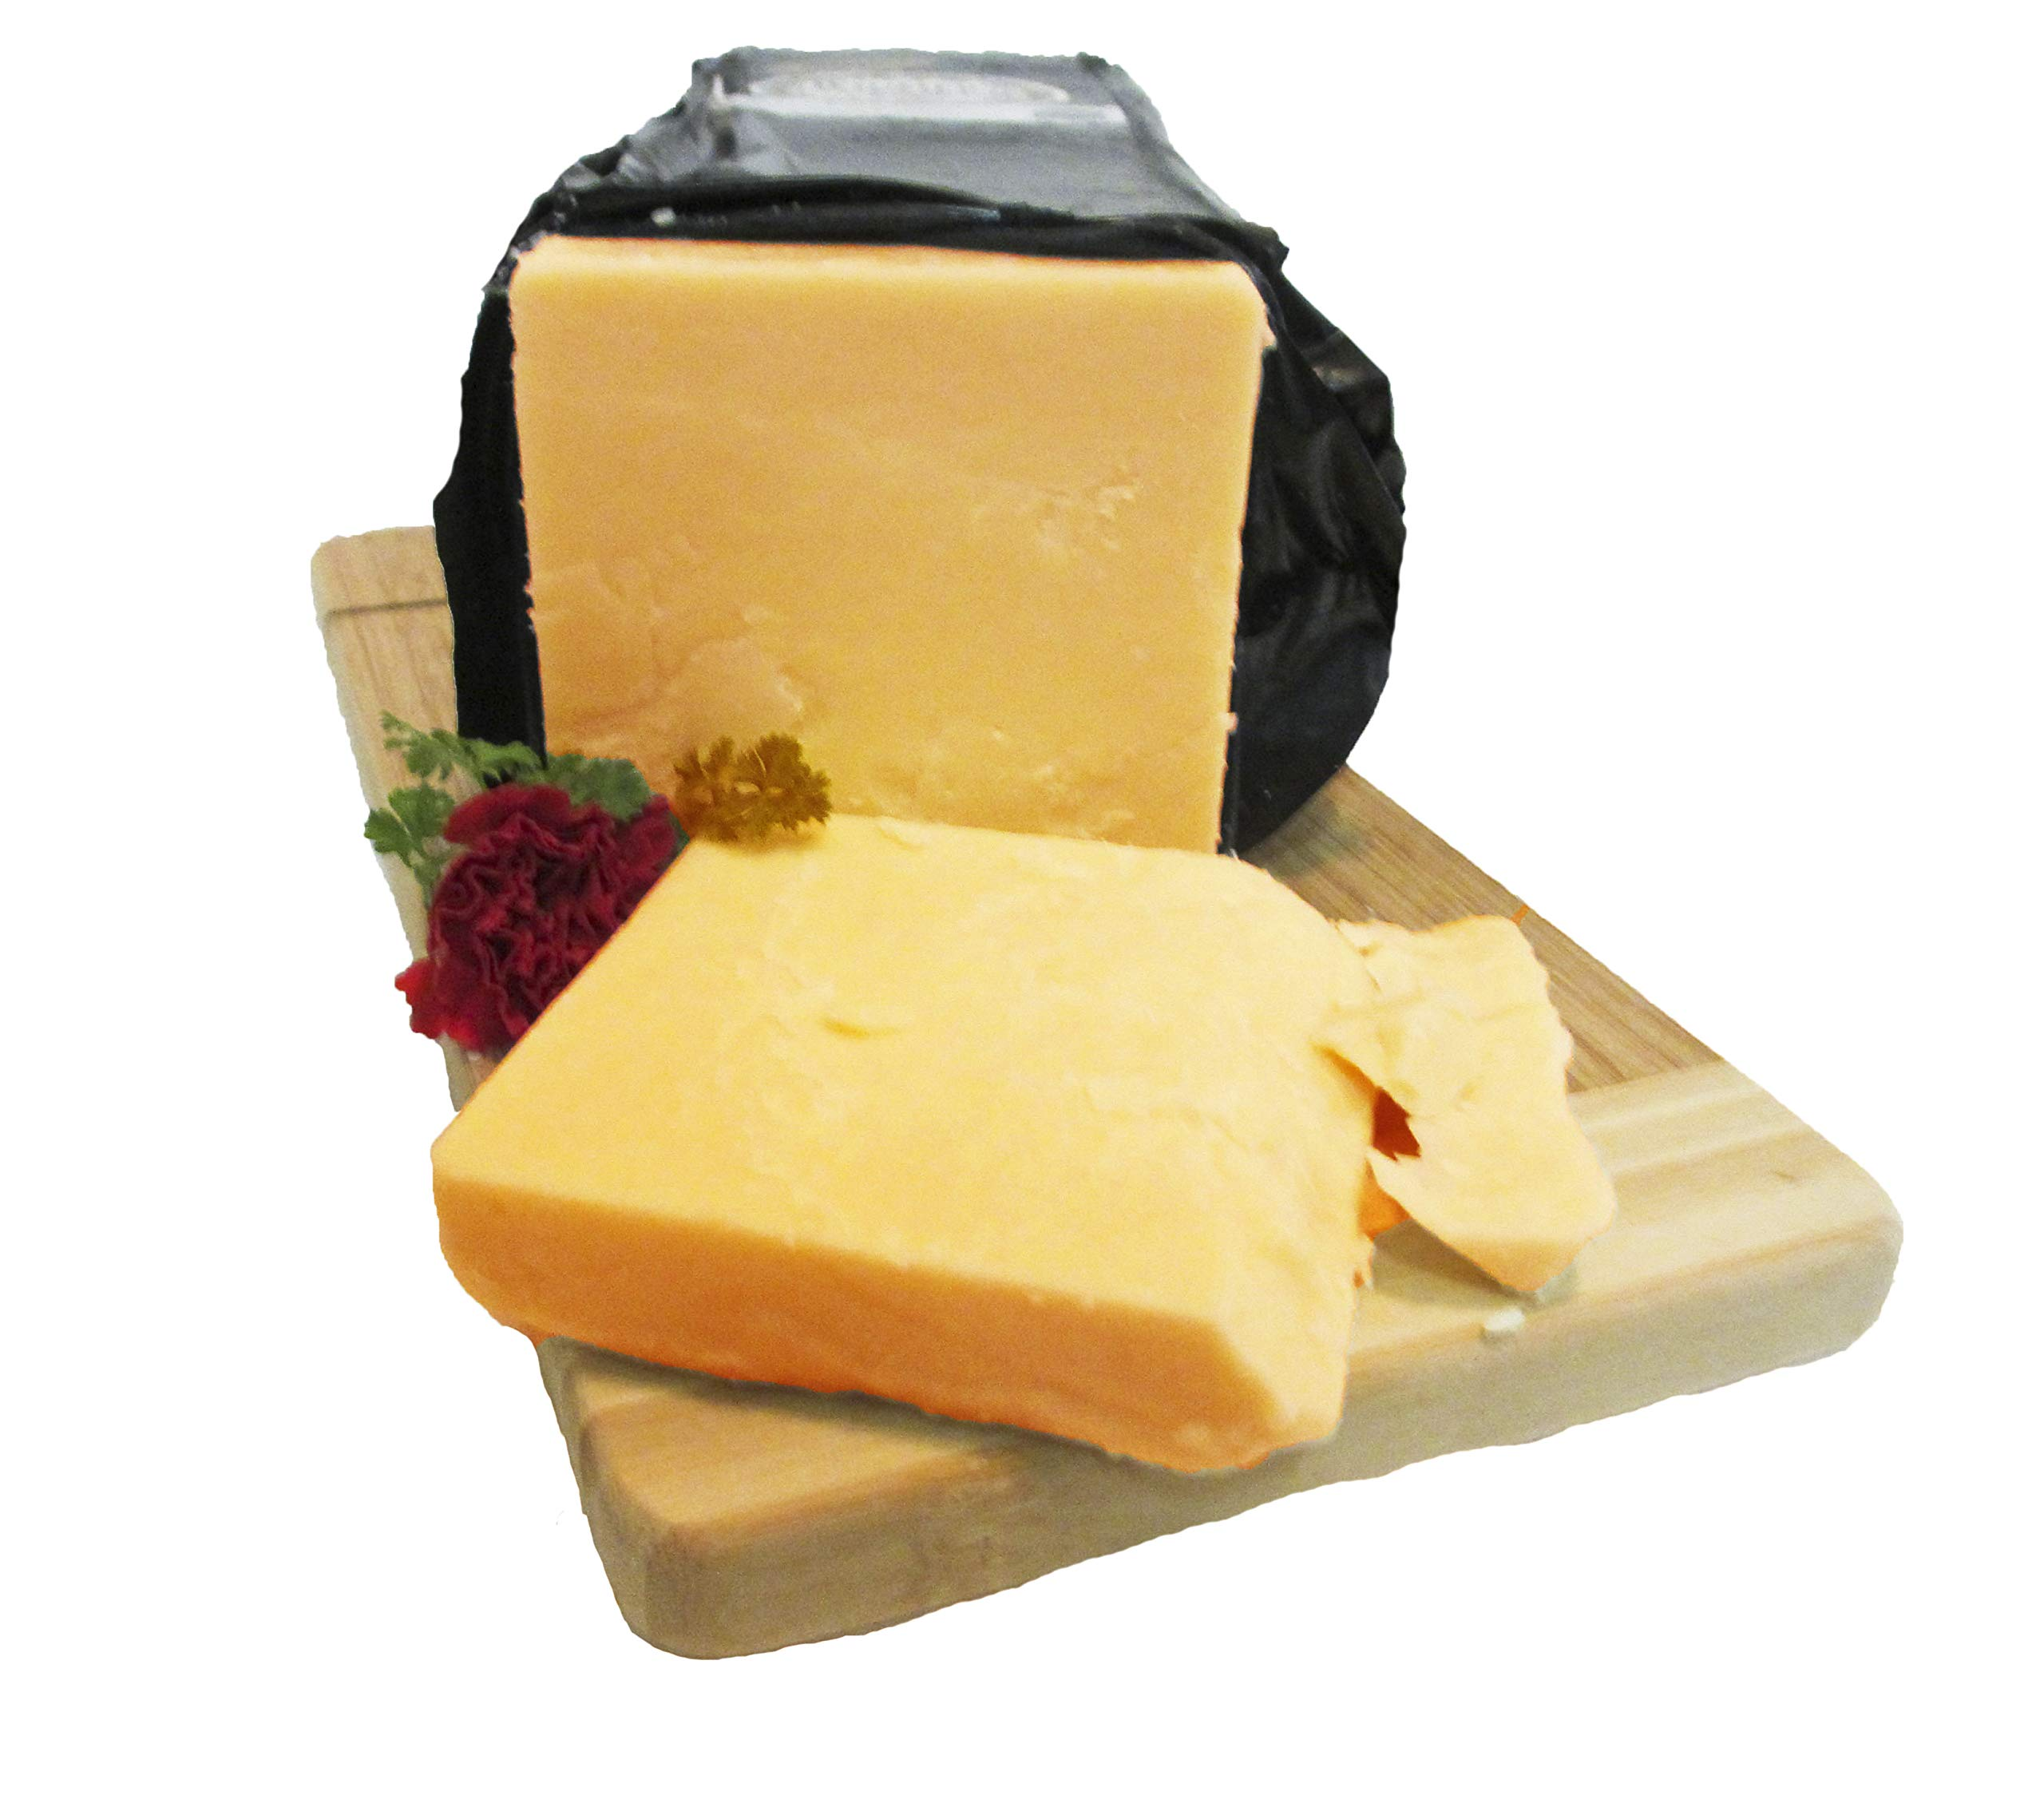 Widmers 10 Year Cheddar Cheese 1 LB by Widmers Cheese Cellars (Image #1)